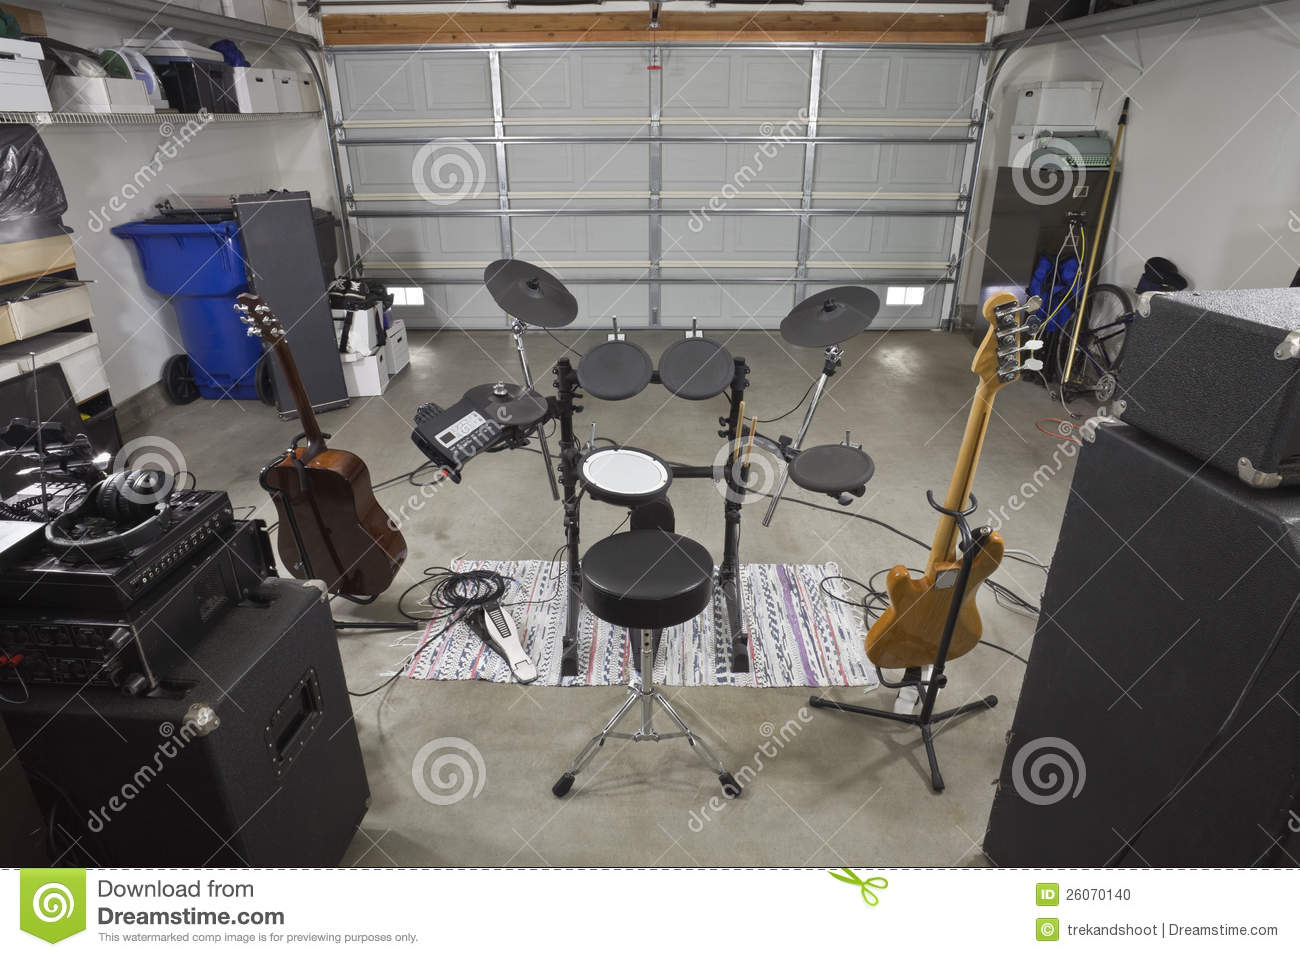 Garage Band Equipment Backstage View Stock Photo Image